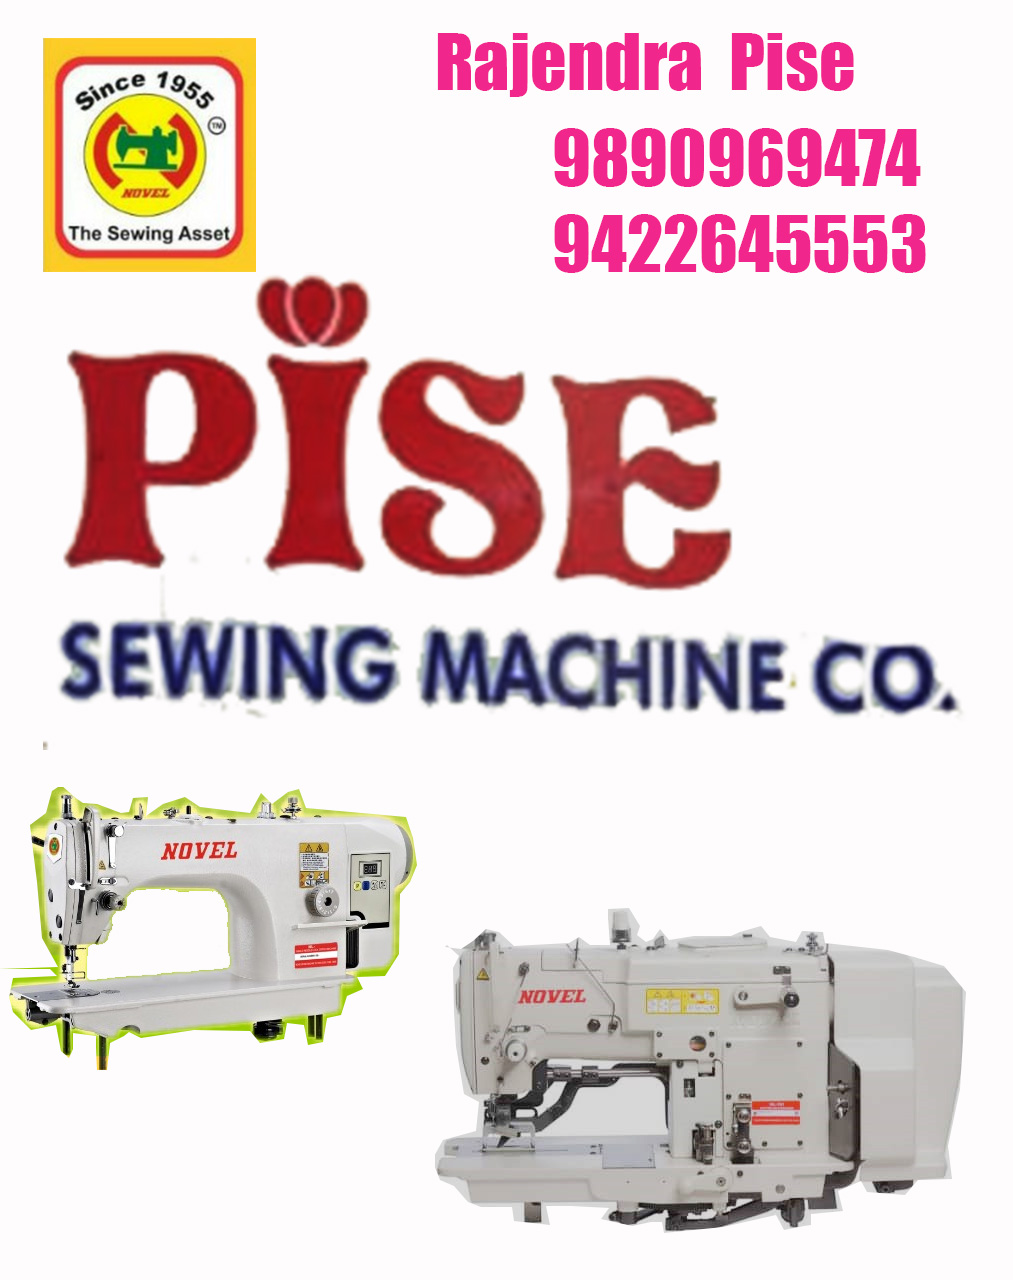 PISE SEWING MACHINE CO. | SolapurMall.com